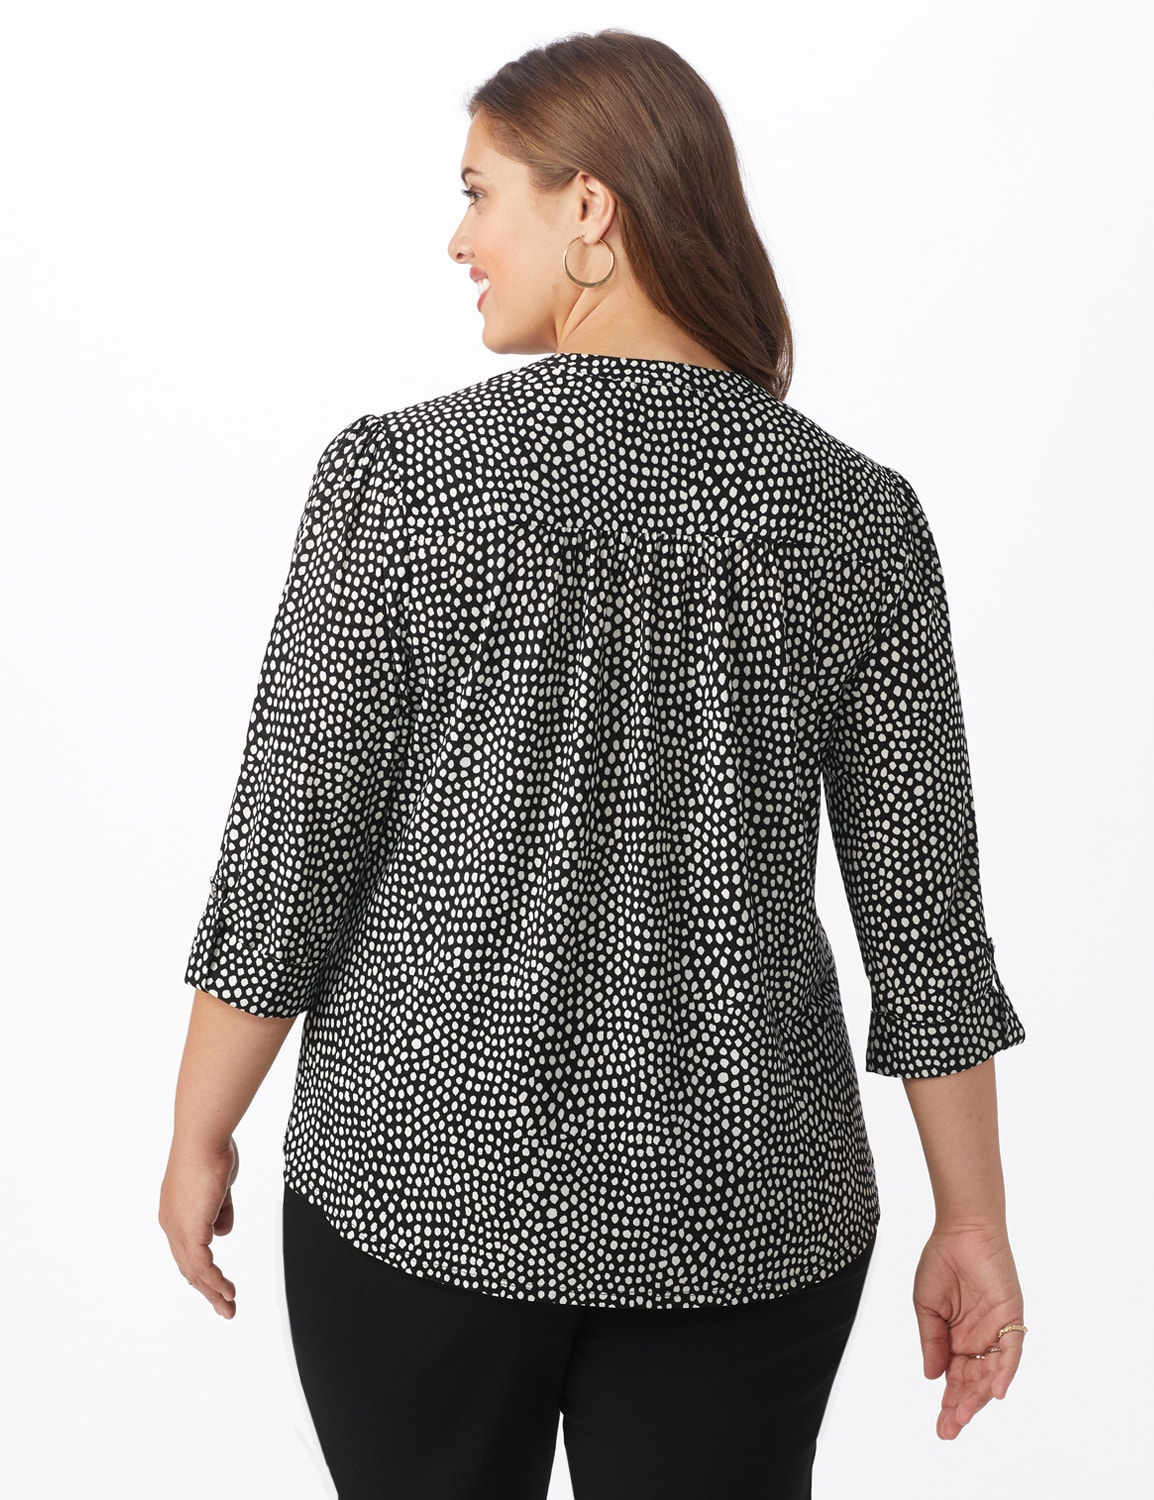 Mixed Dot Pintuck Knit Popover - Plus - Black/White - Back